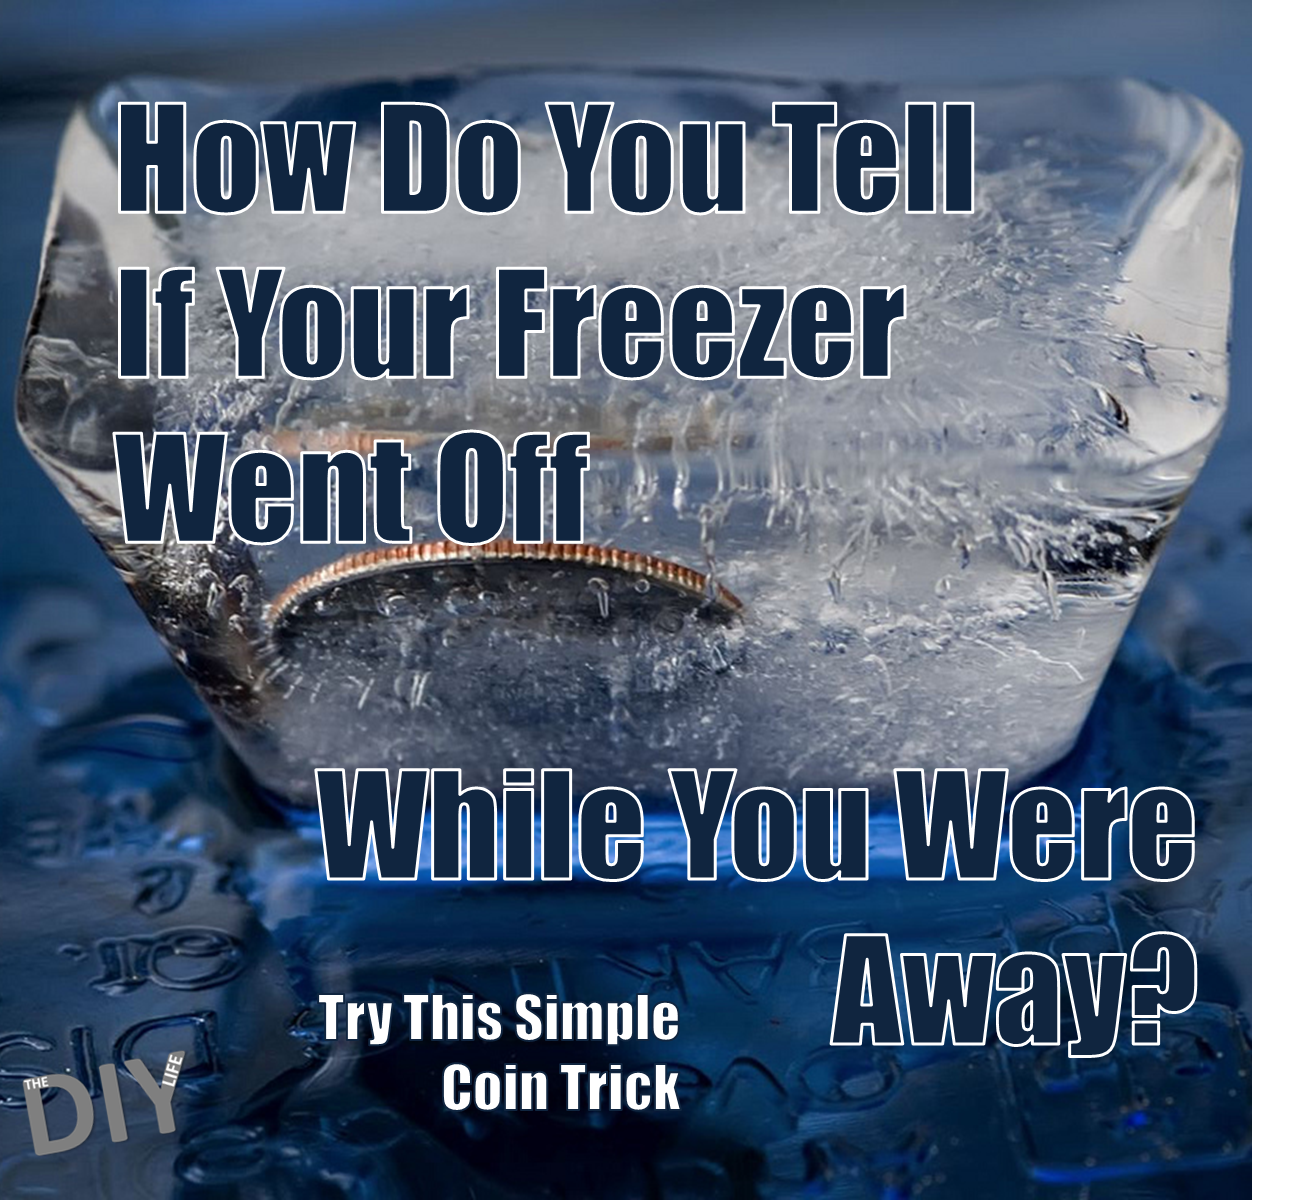 put a coin in the freezer trick